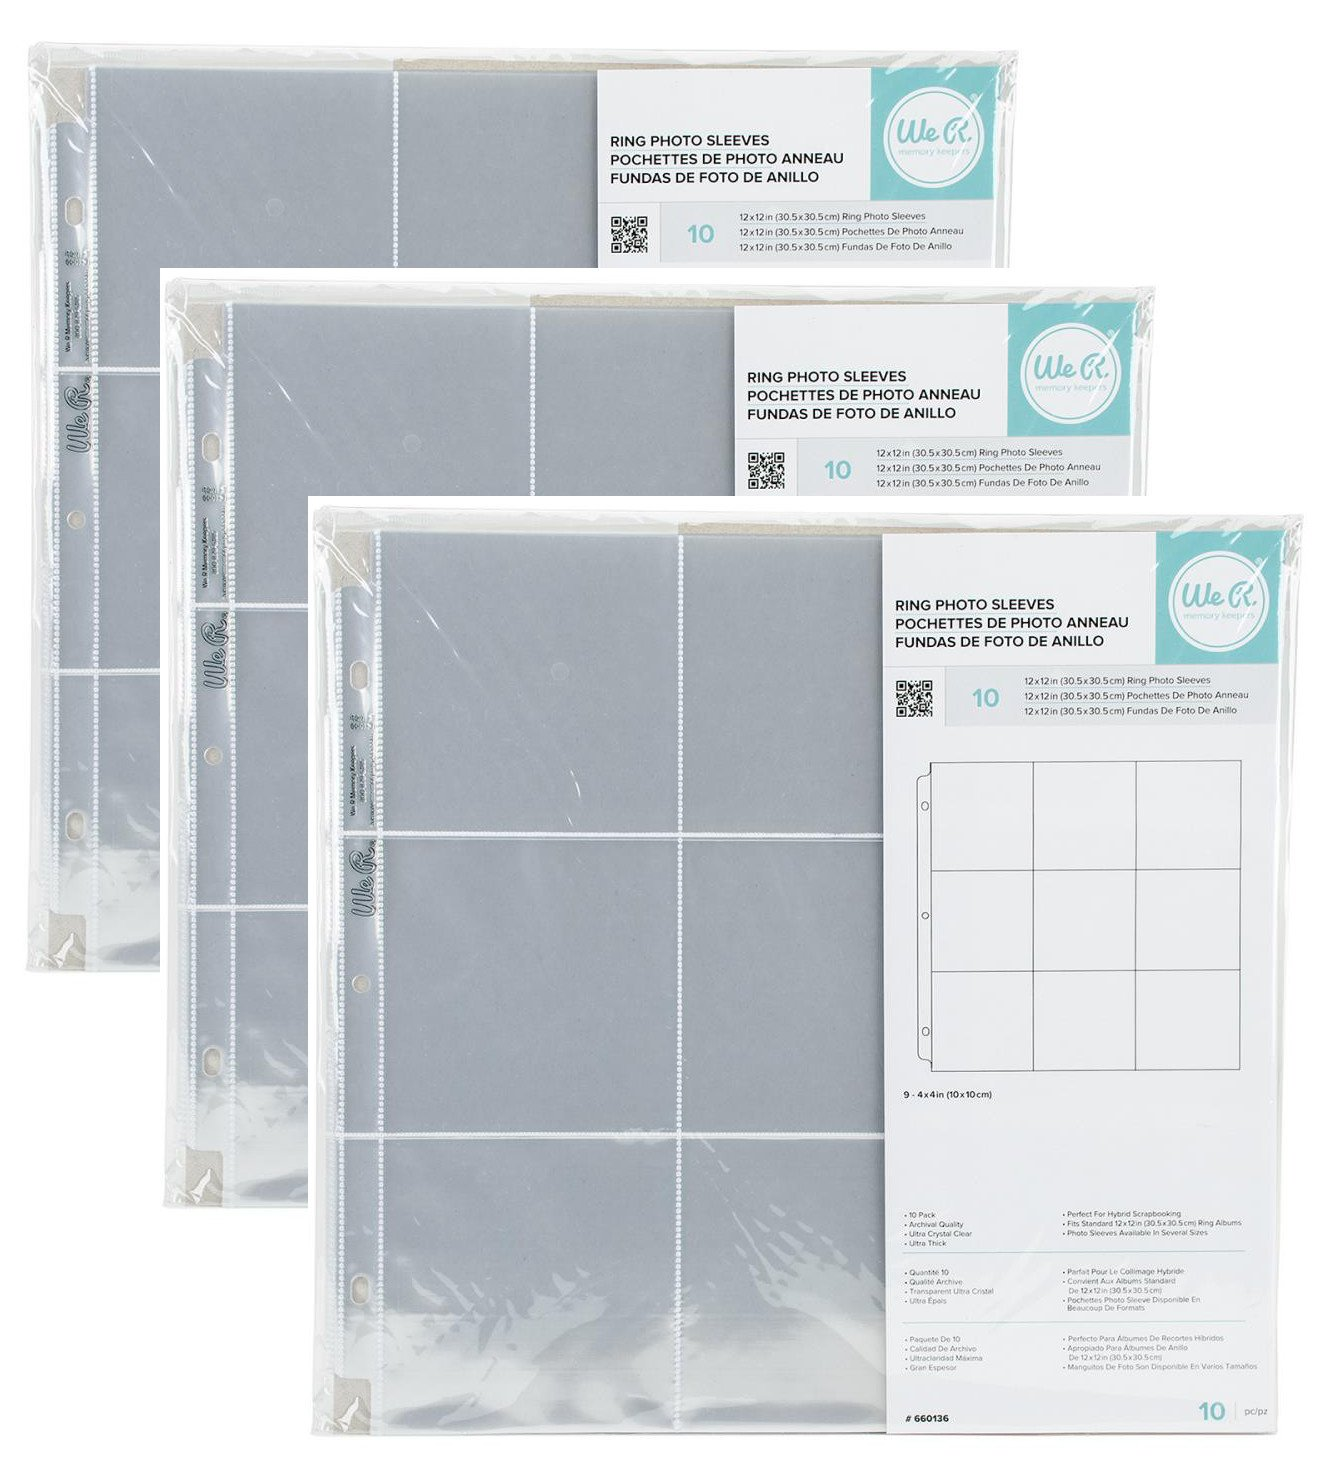 3-PACK - We R Memory Keepers 12 x 12 inch (9 - 4 x 4 inch pockets) 3-Ring Album Photo Sleeve Protectors , 10 Pk